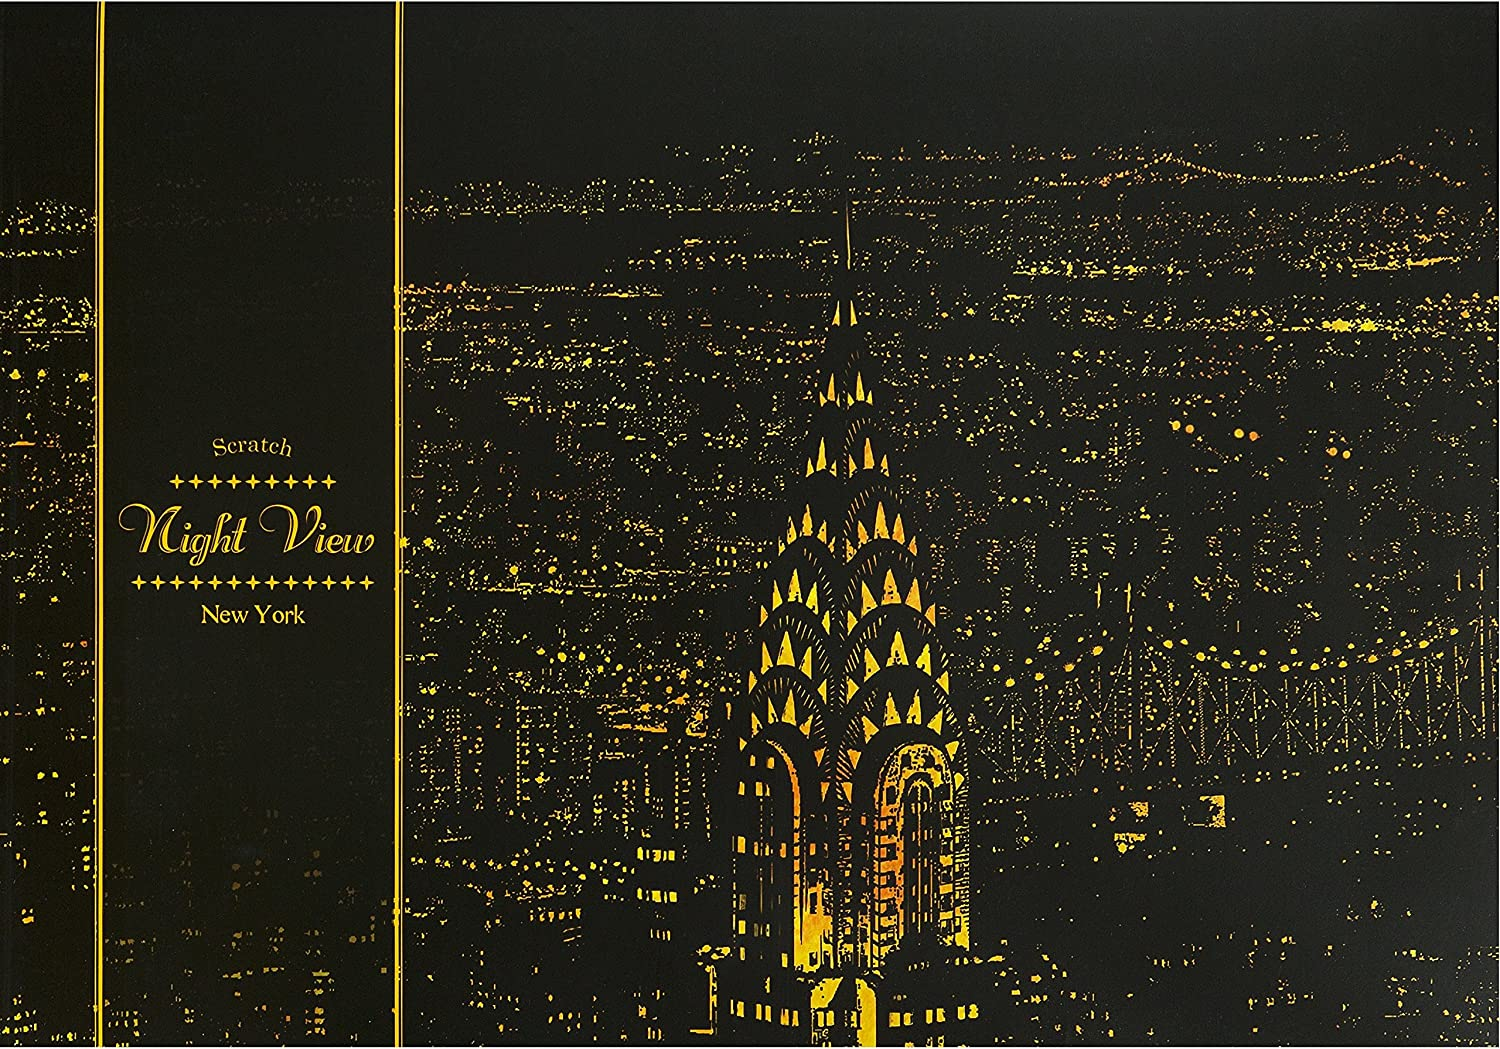 [Lago Design] World Famous Famous Famous Scratch Night View Poster_New York 134e0c